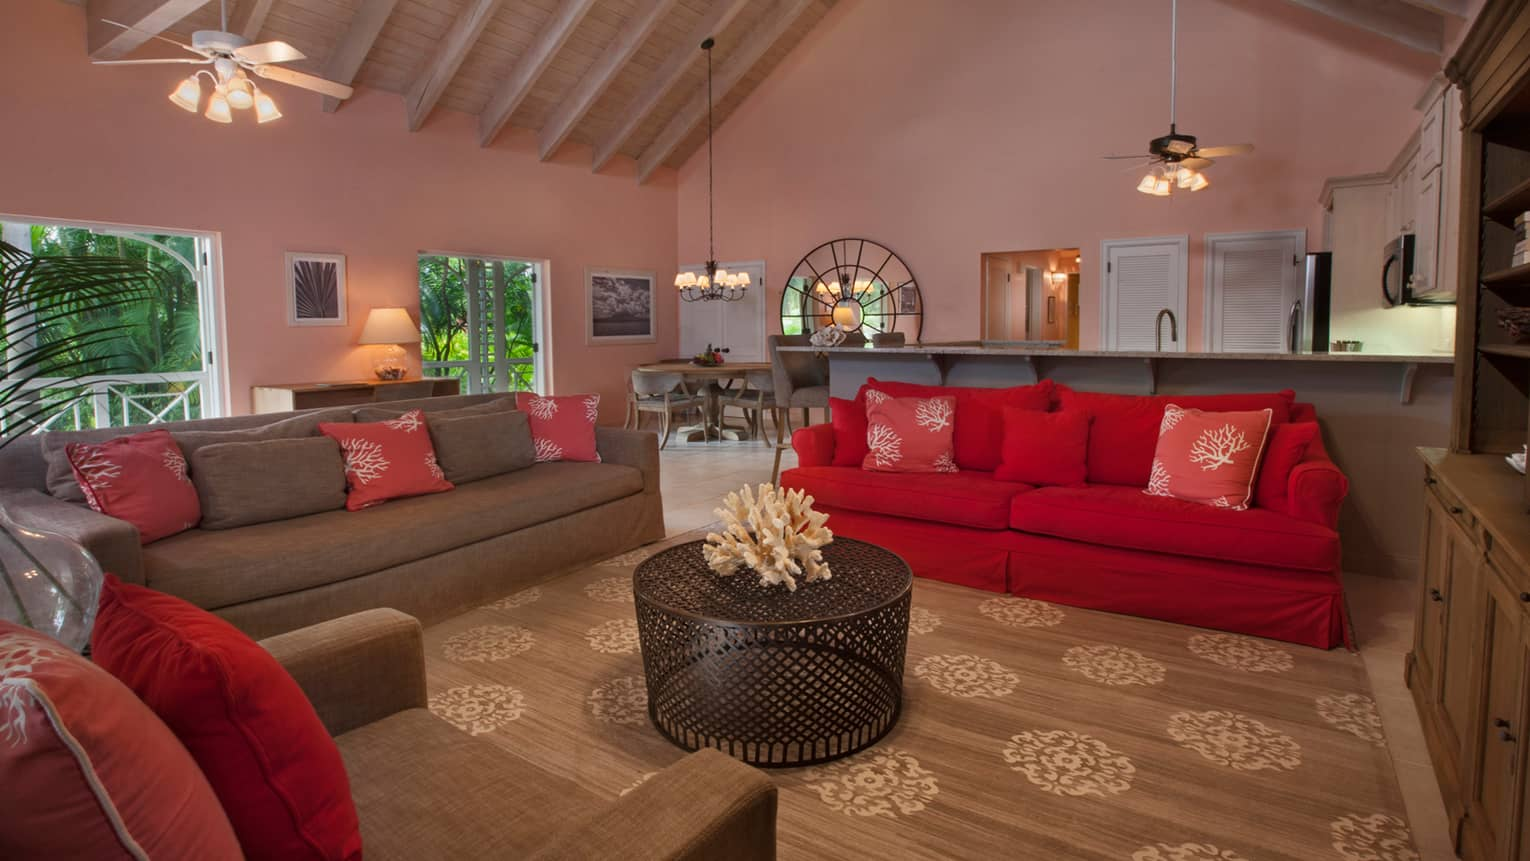 Residence living room, red, brown sofas under soaring wood beam ceilings